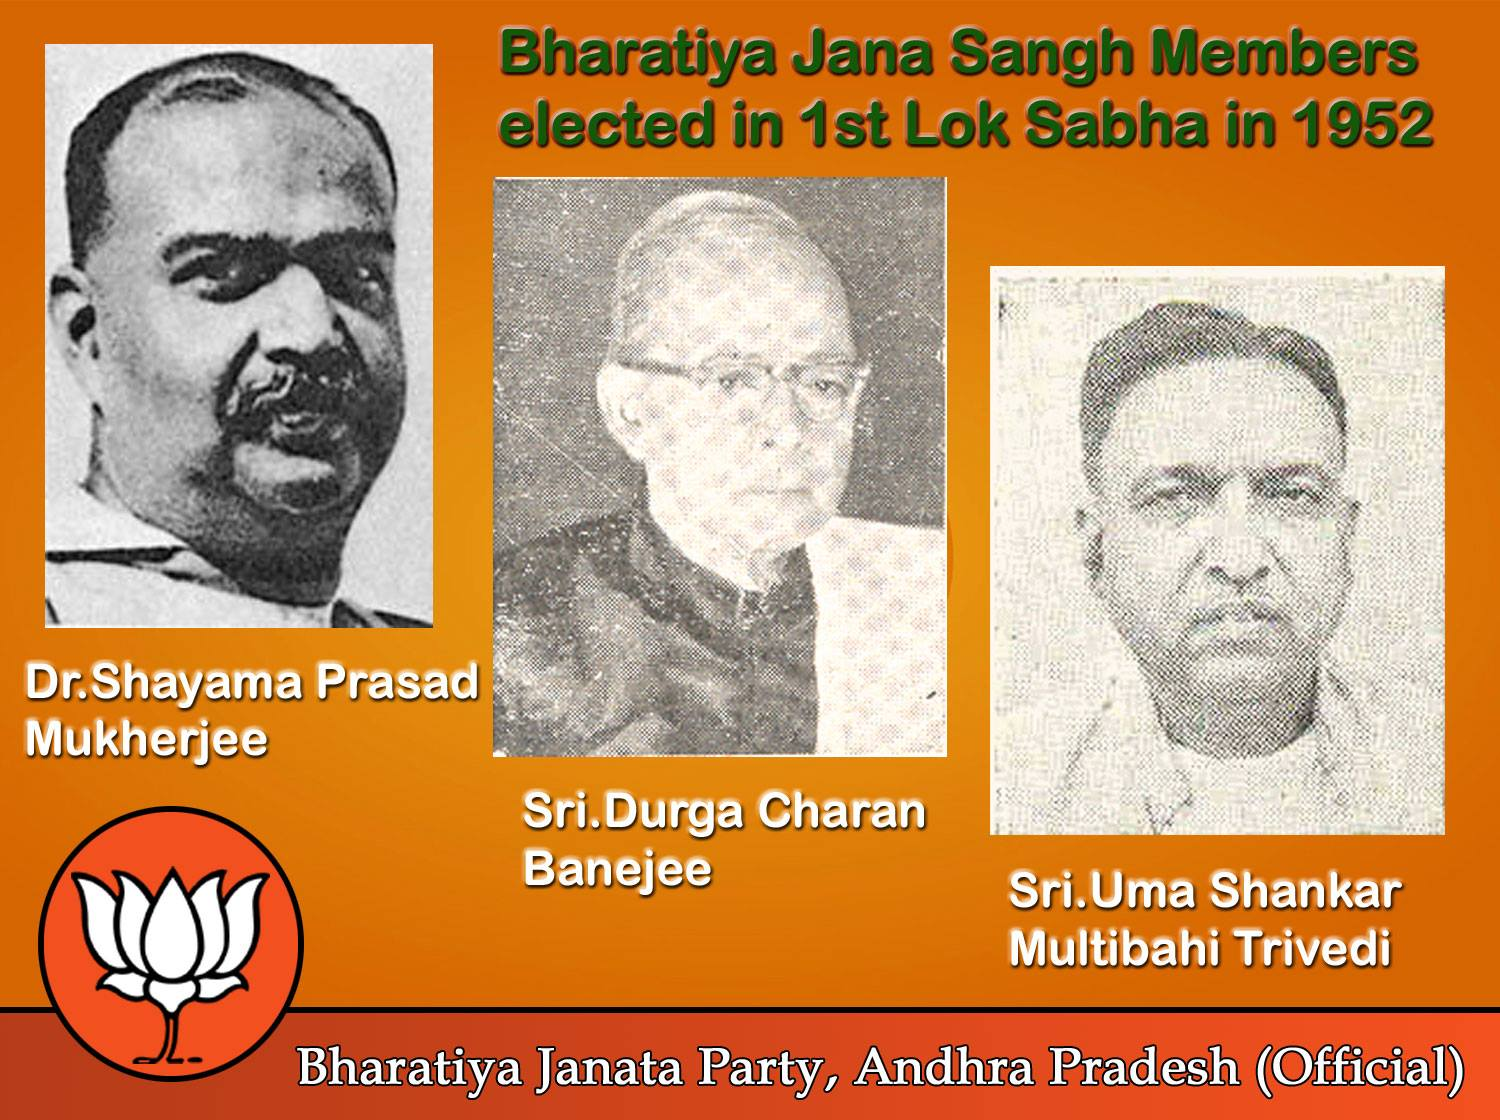 essay of the ideology and social base of bharatiya janata party essay